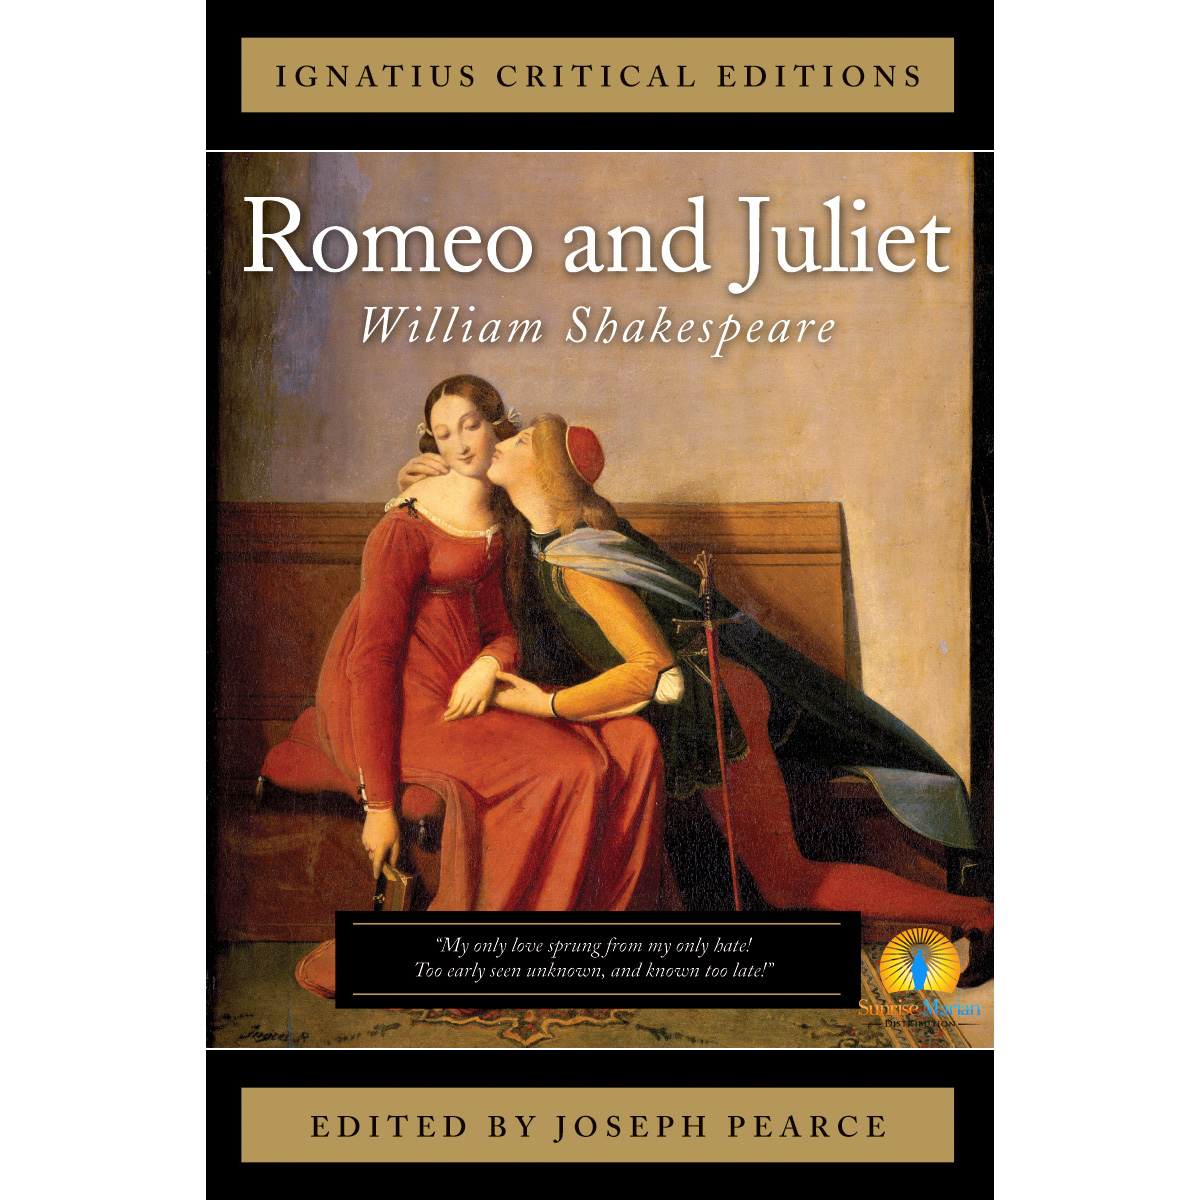 a literary analysis of julius caesar and romeo and juliet by william shakespeare Tag: shakespeare timeless quotes from romeo and juliet hailed as one of the popular tragedies in classical literature, romeo and juliet is replete with memorable and timeless quotes that defy the confines of time and space.